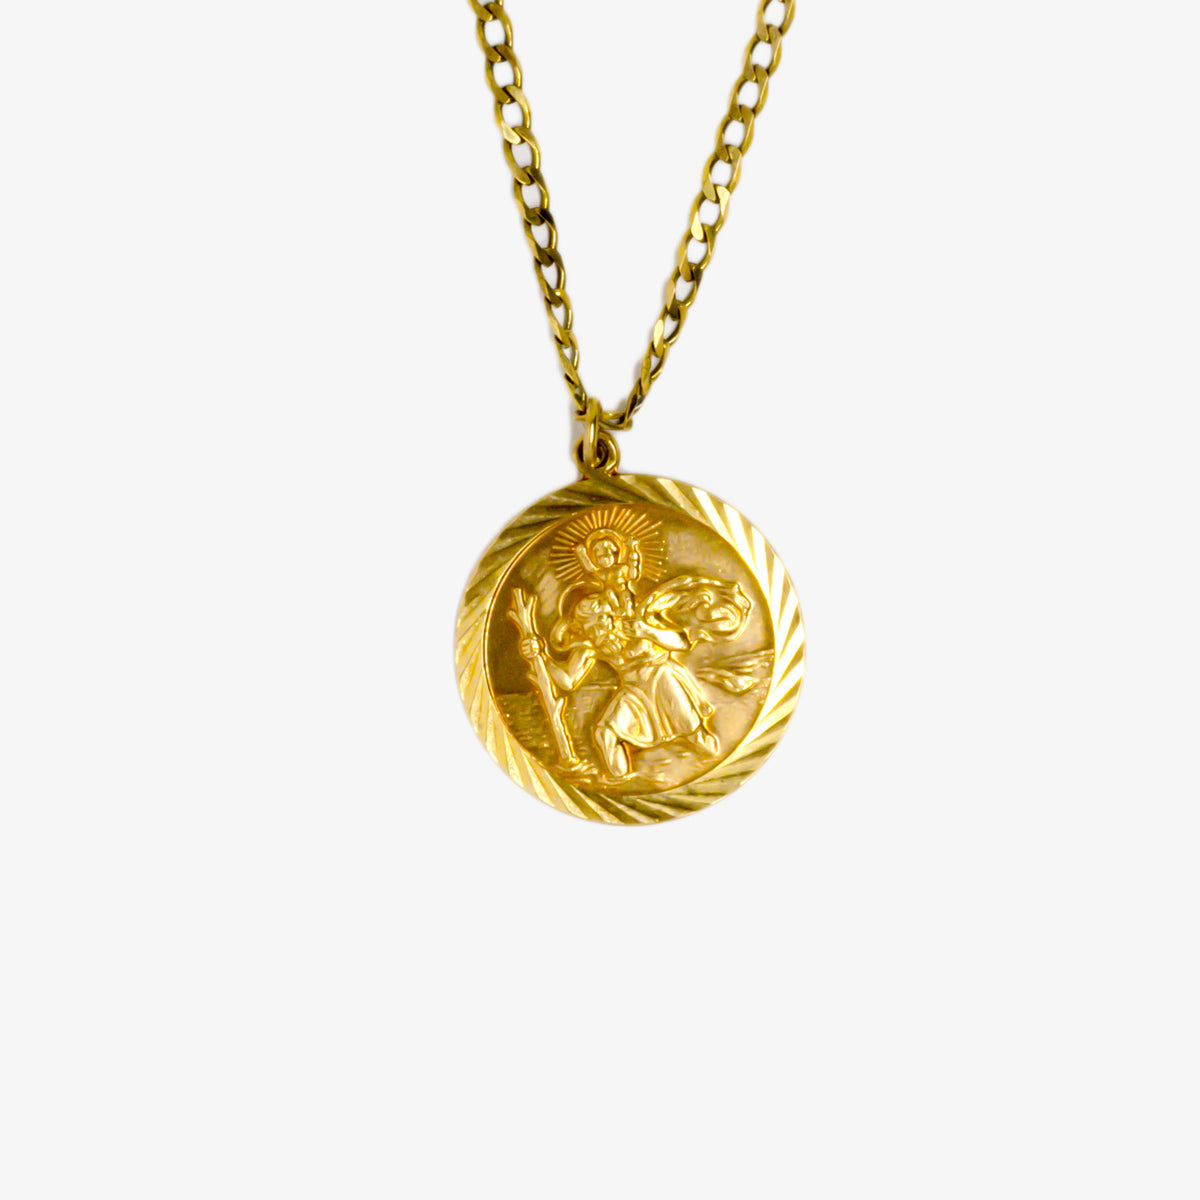 Gold St Christopher Pendant Necklace